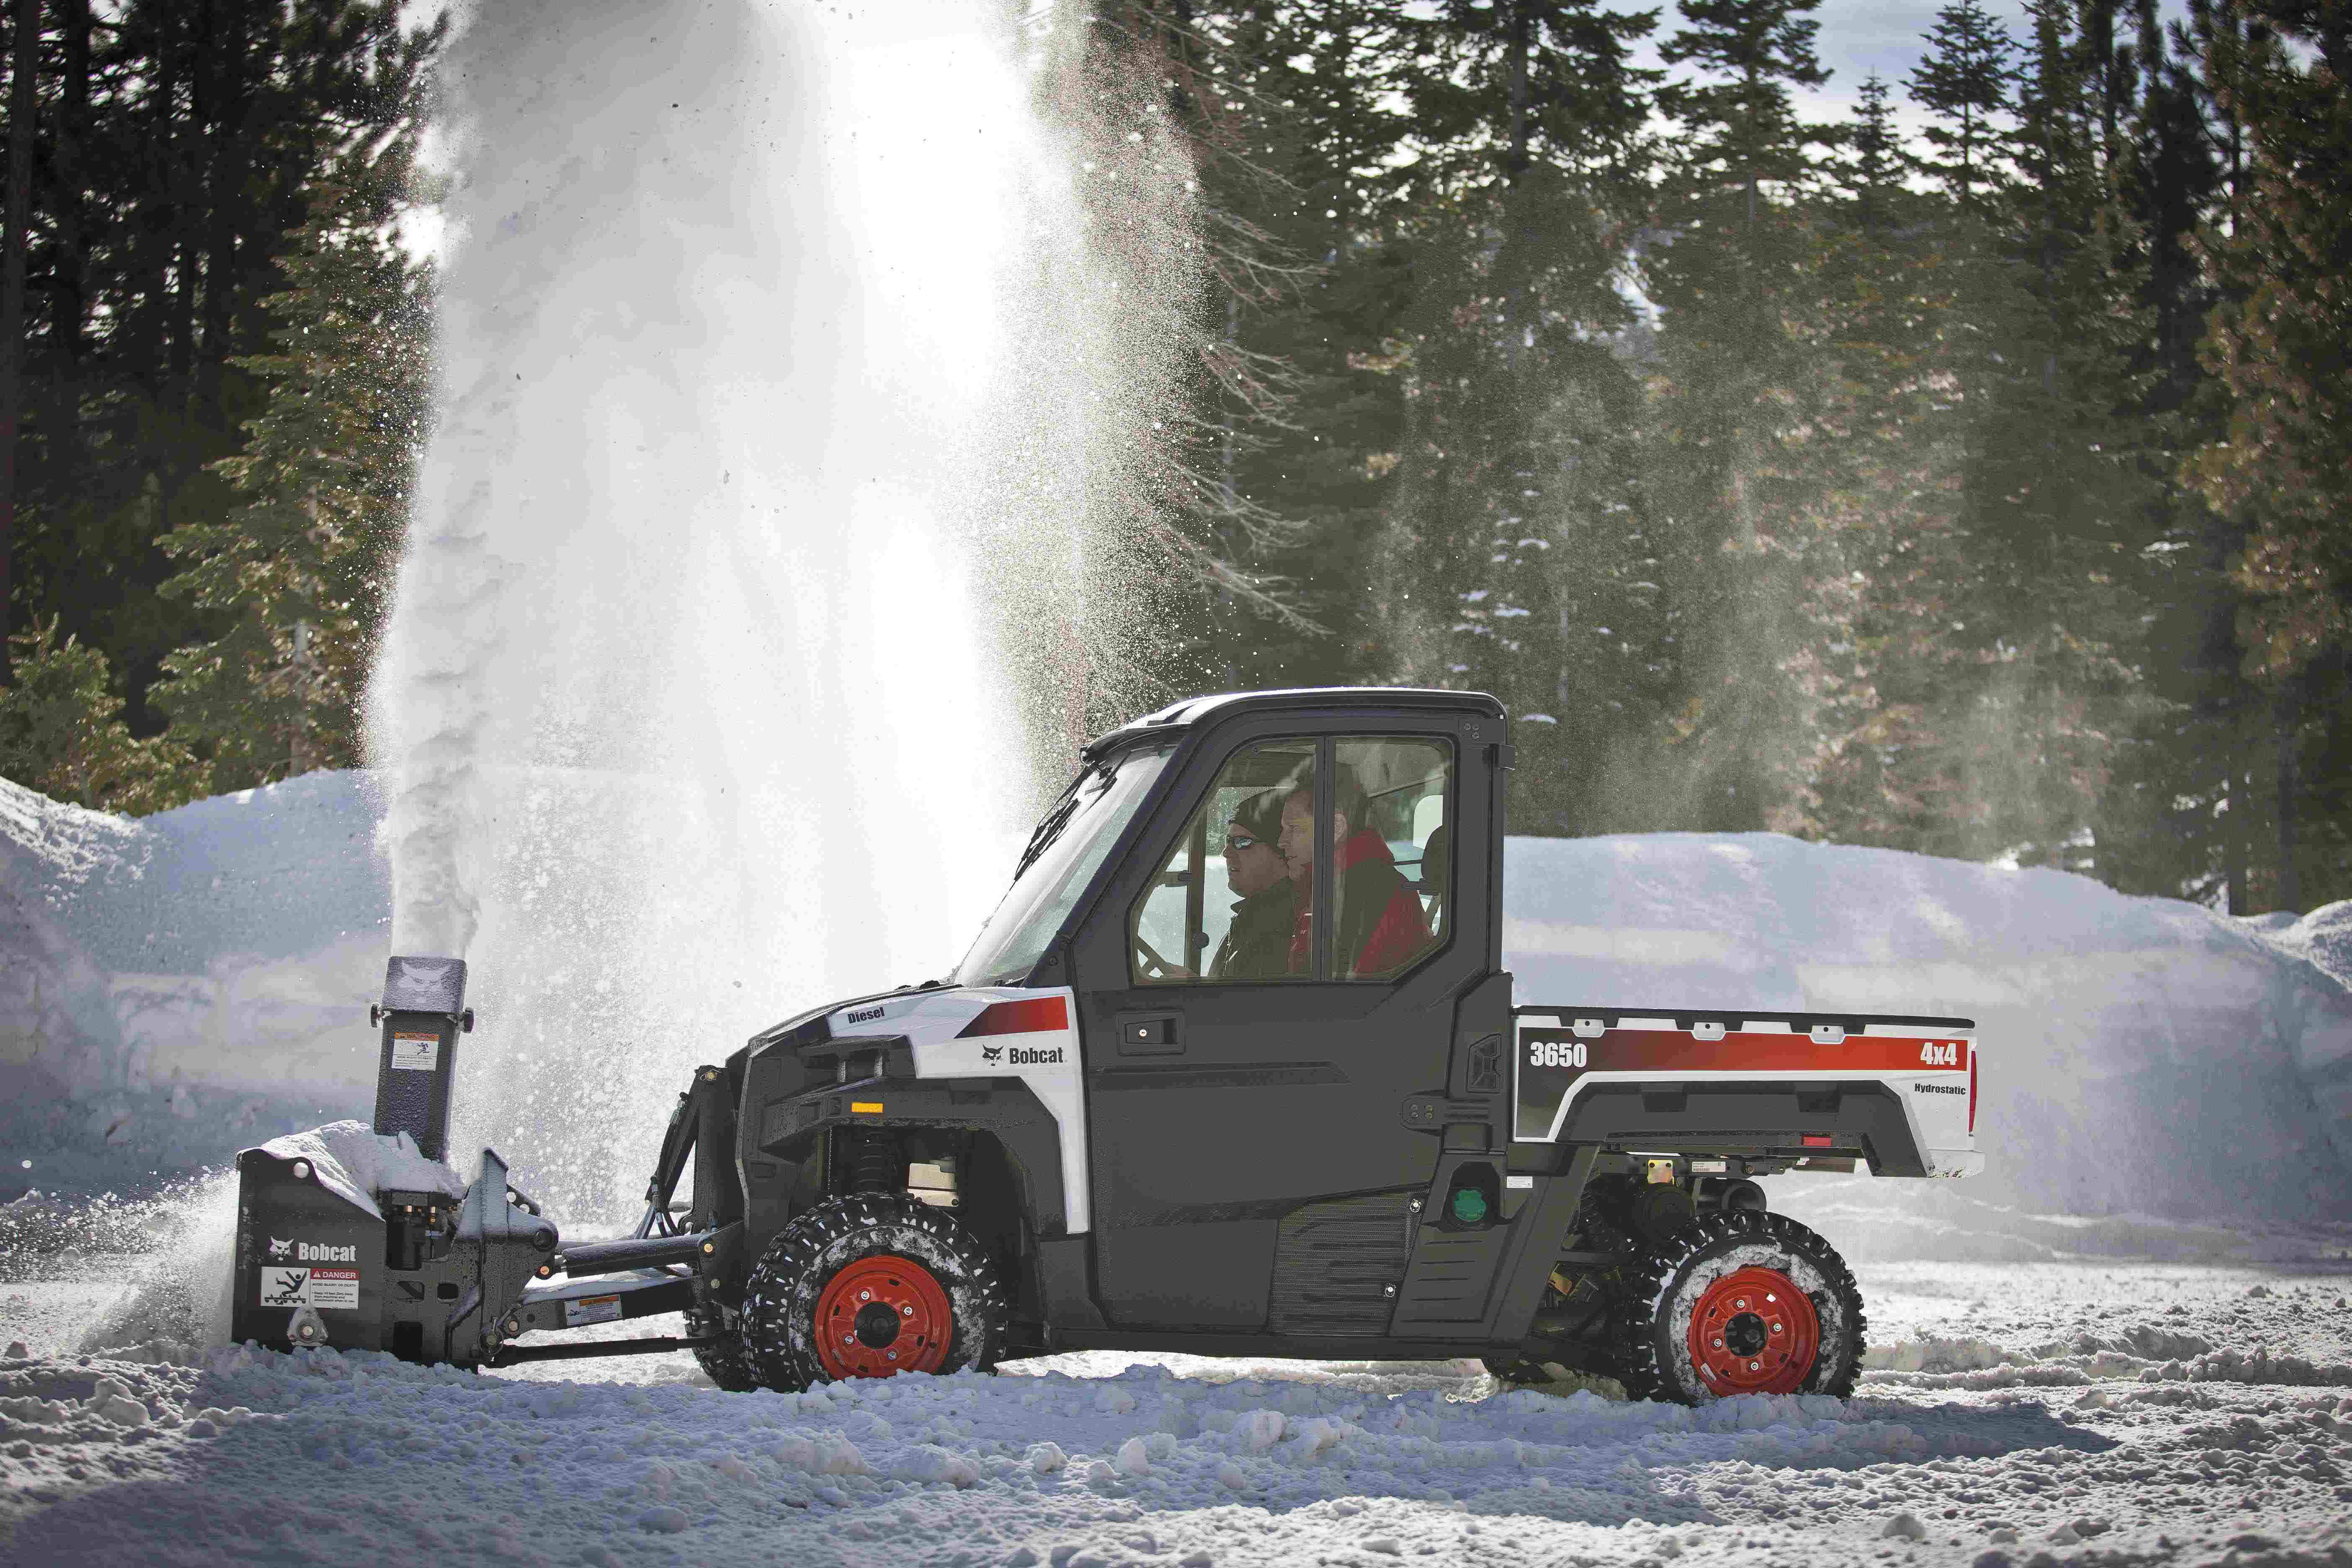 Bobcat's 3600, 3650 utility vehicles feature hydrostatic drive